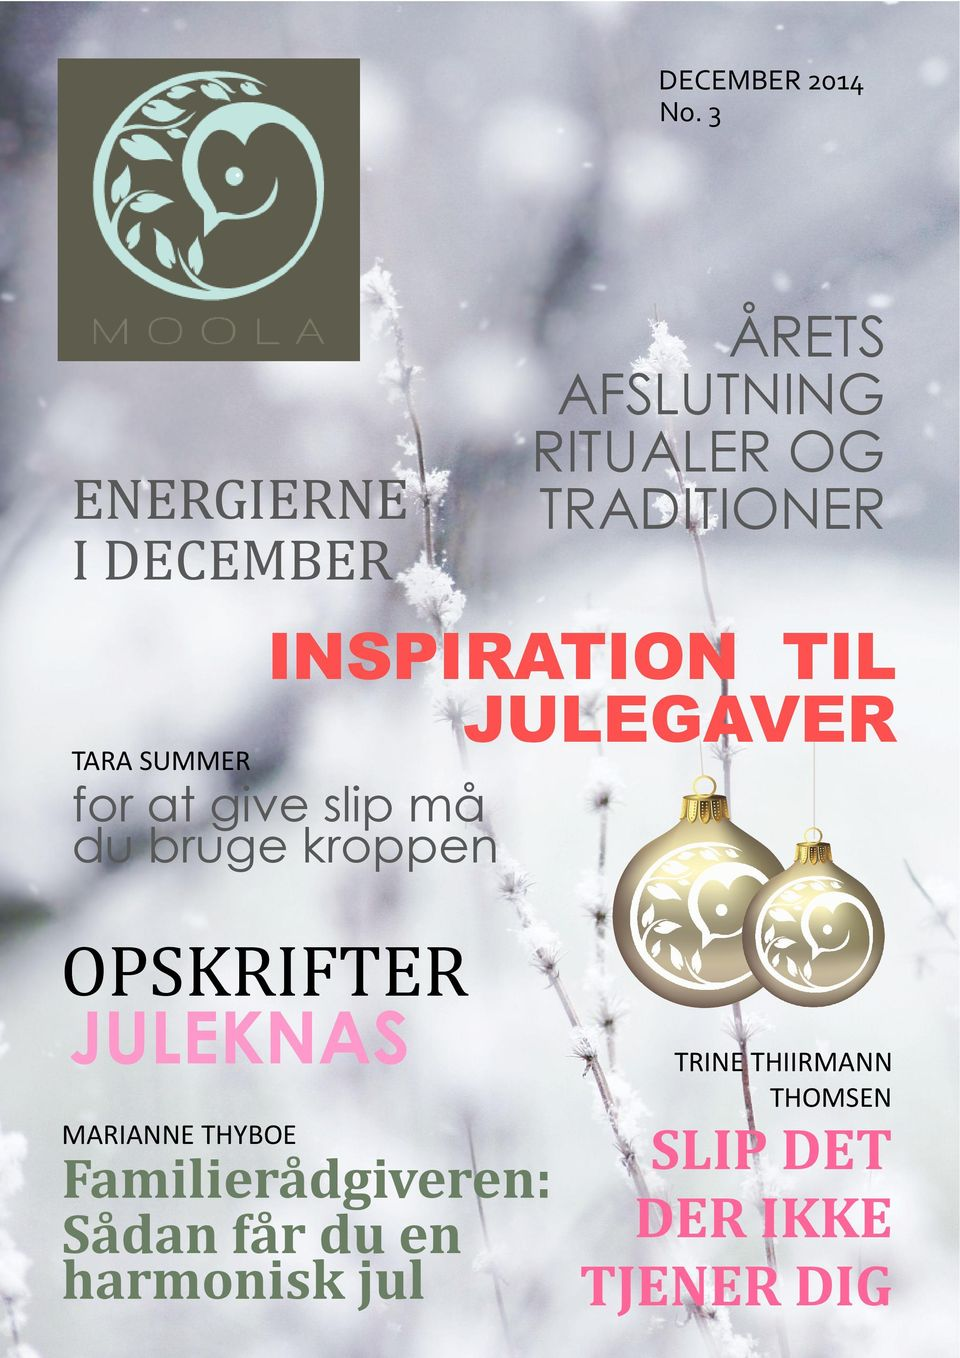 INSPIRATION TIL JULEGAVER TARA SUMMER for at give slip må du bruge